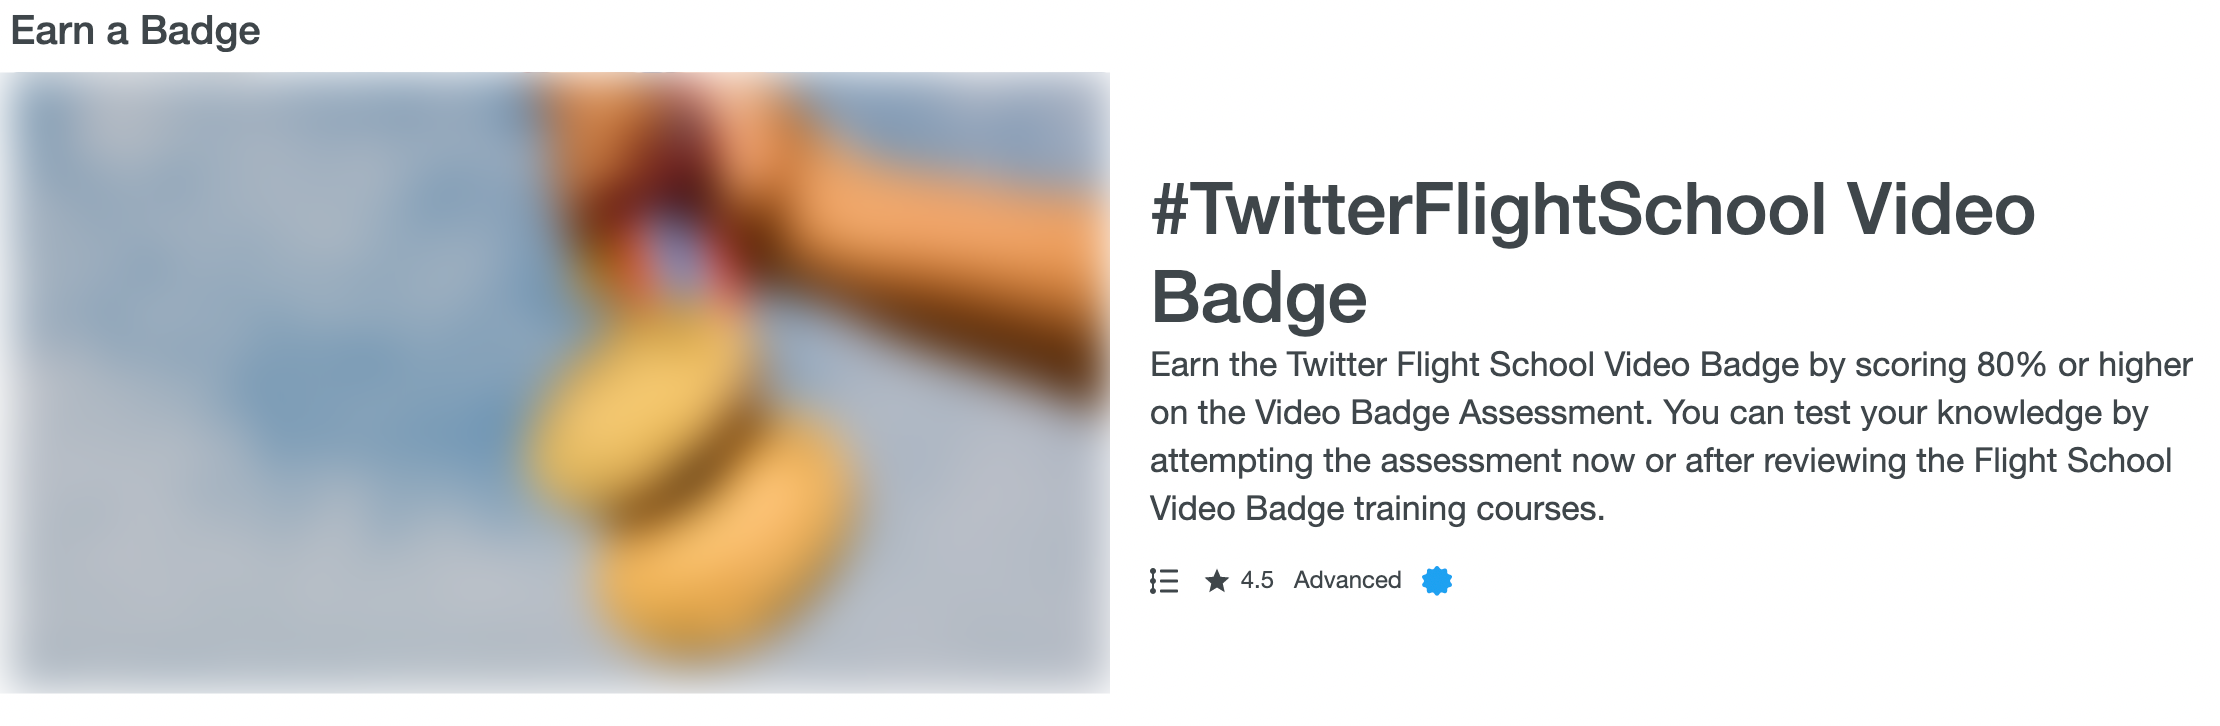 Earning badges and certifications from Twitter Flight School.